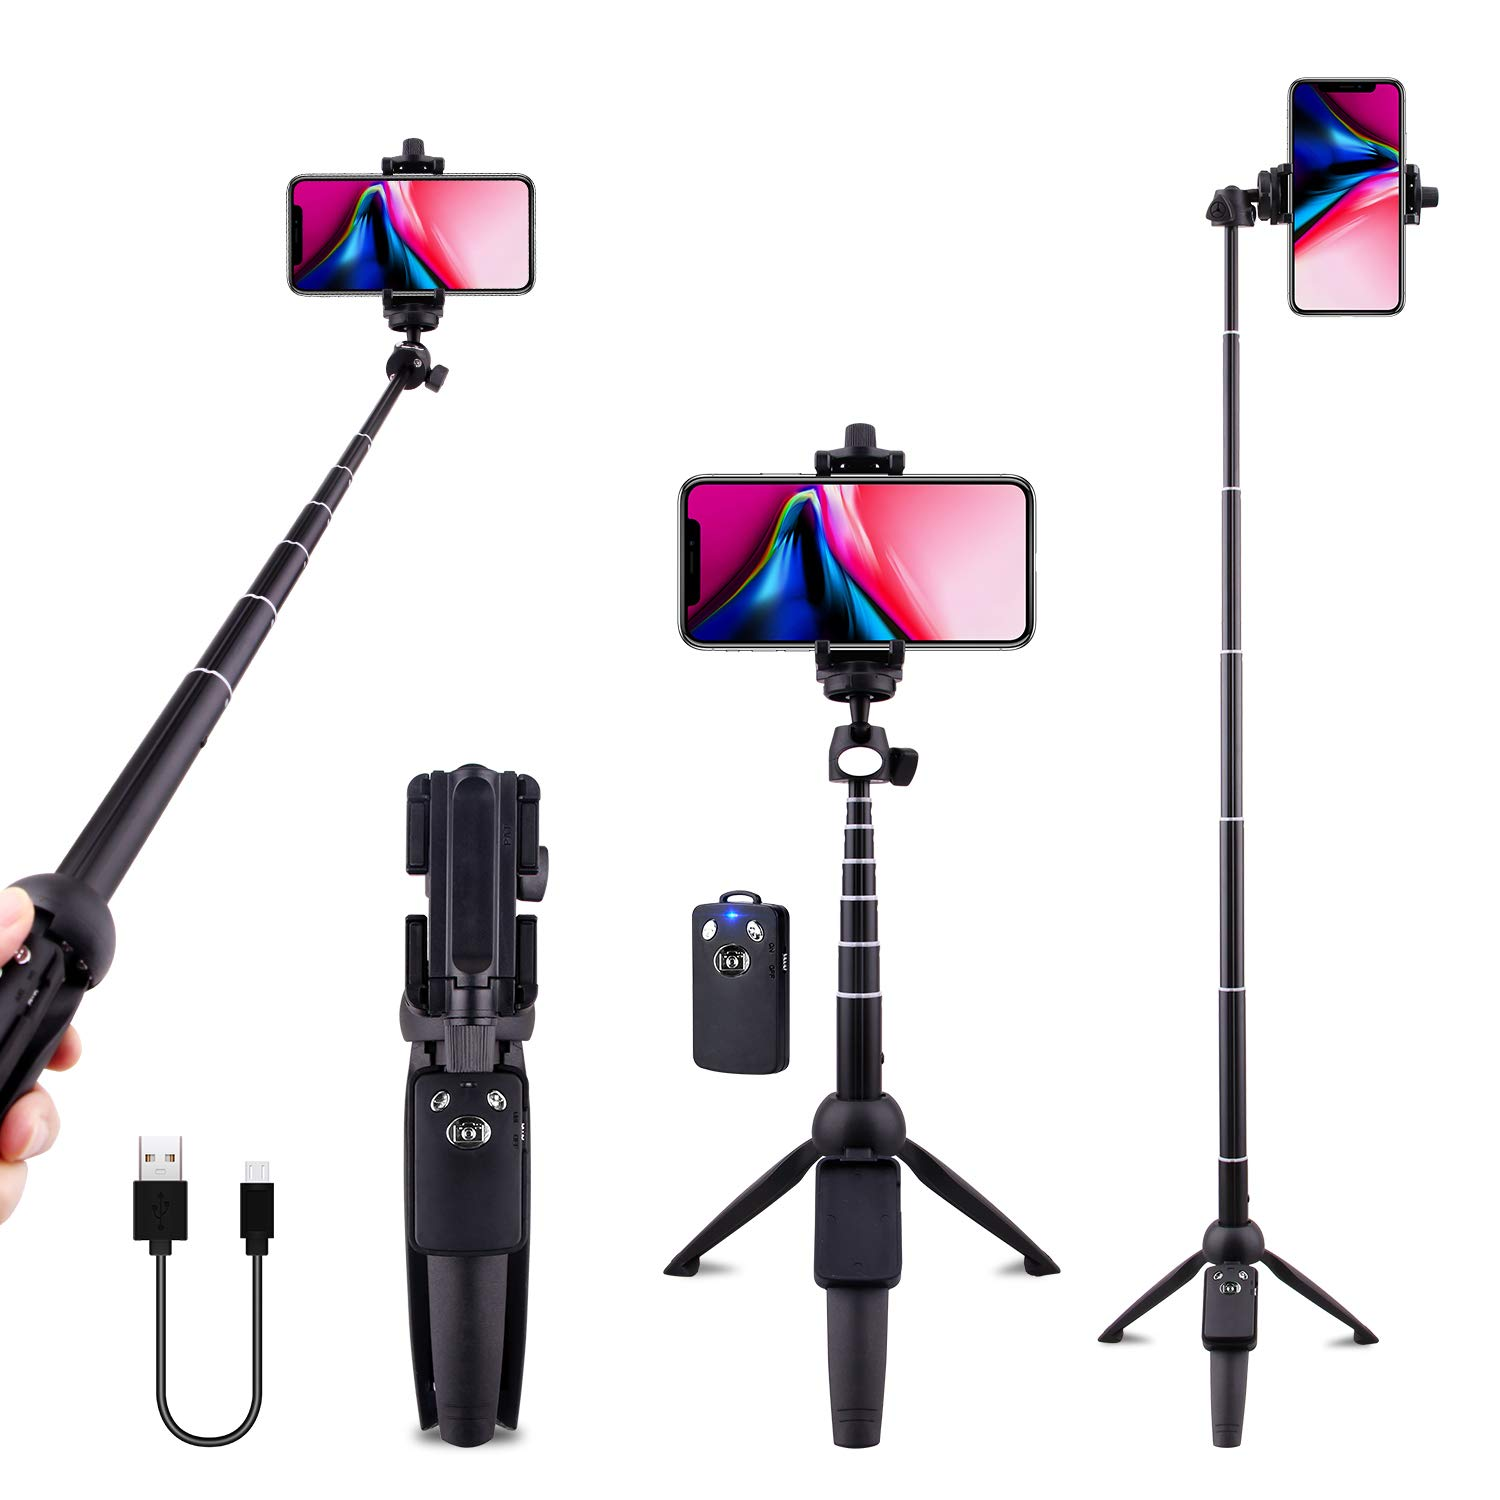 Selfie Stick Tripod Bluetooth, LATZZ 40 Inch Extendable Phone Tripod Monopod with Wireless Remote Shutter and Tripod Stand Compatible iPhone X/8/8P/7/7P/6/6P/Galaxy Note 8/S9+/S9, More